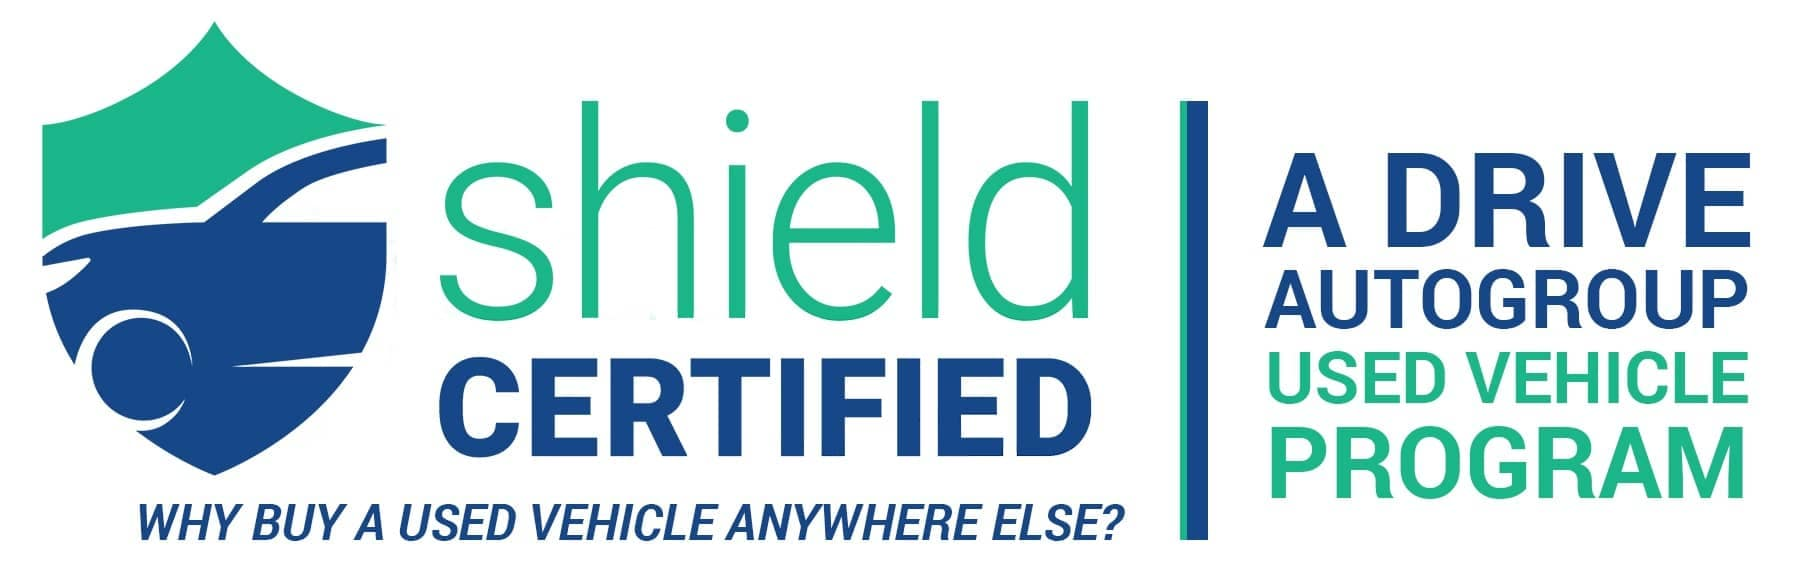 Shield Certified A Drive Autogroup Used Vehicle Program